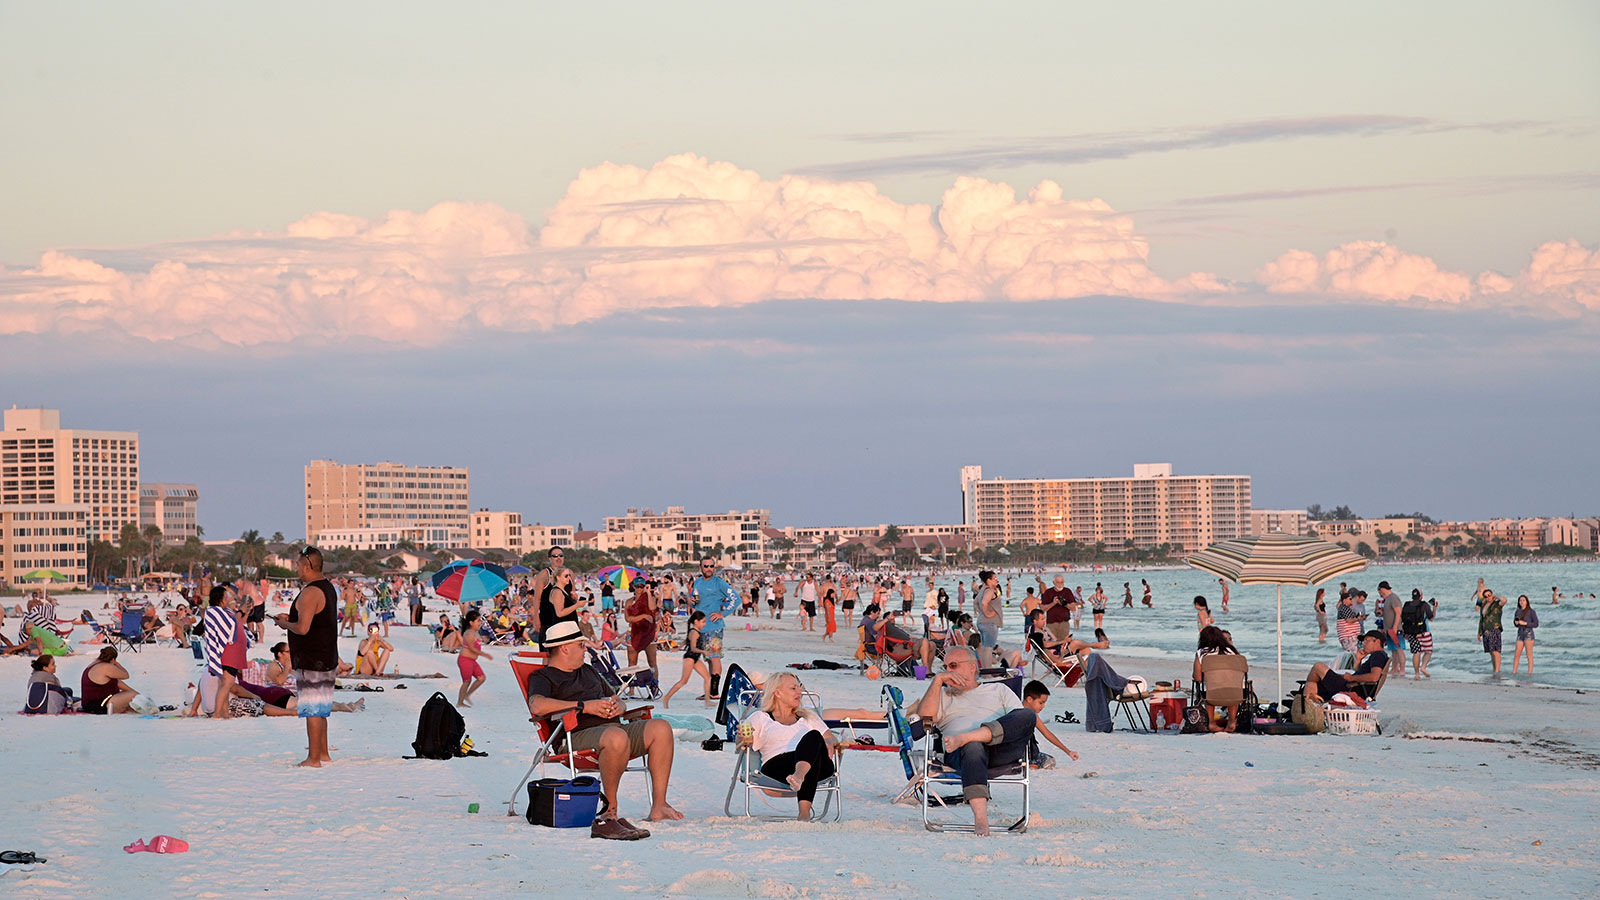 Visitors enjoy Siesta Key Beach as the sun sets over the Gulf of Mexico in Sarasota, Florida on June 17.